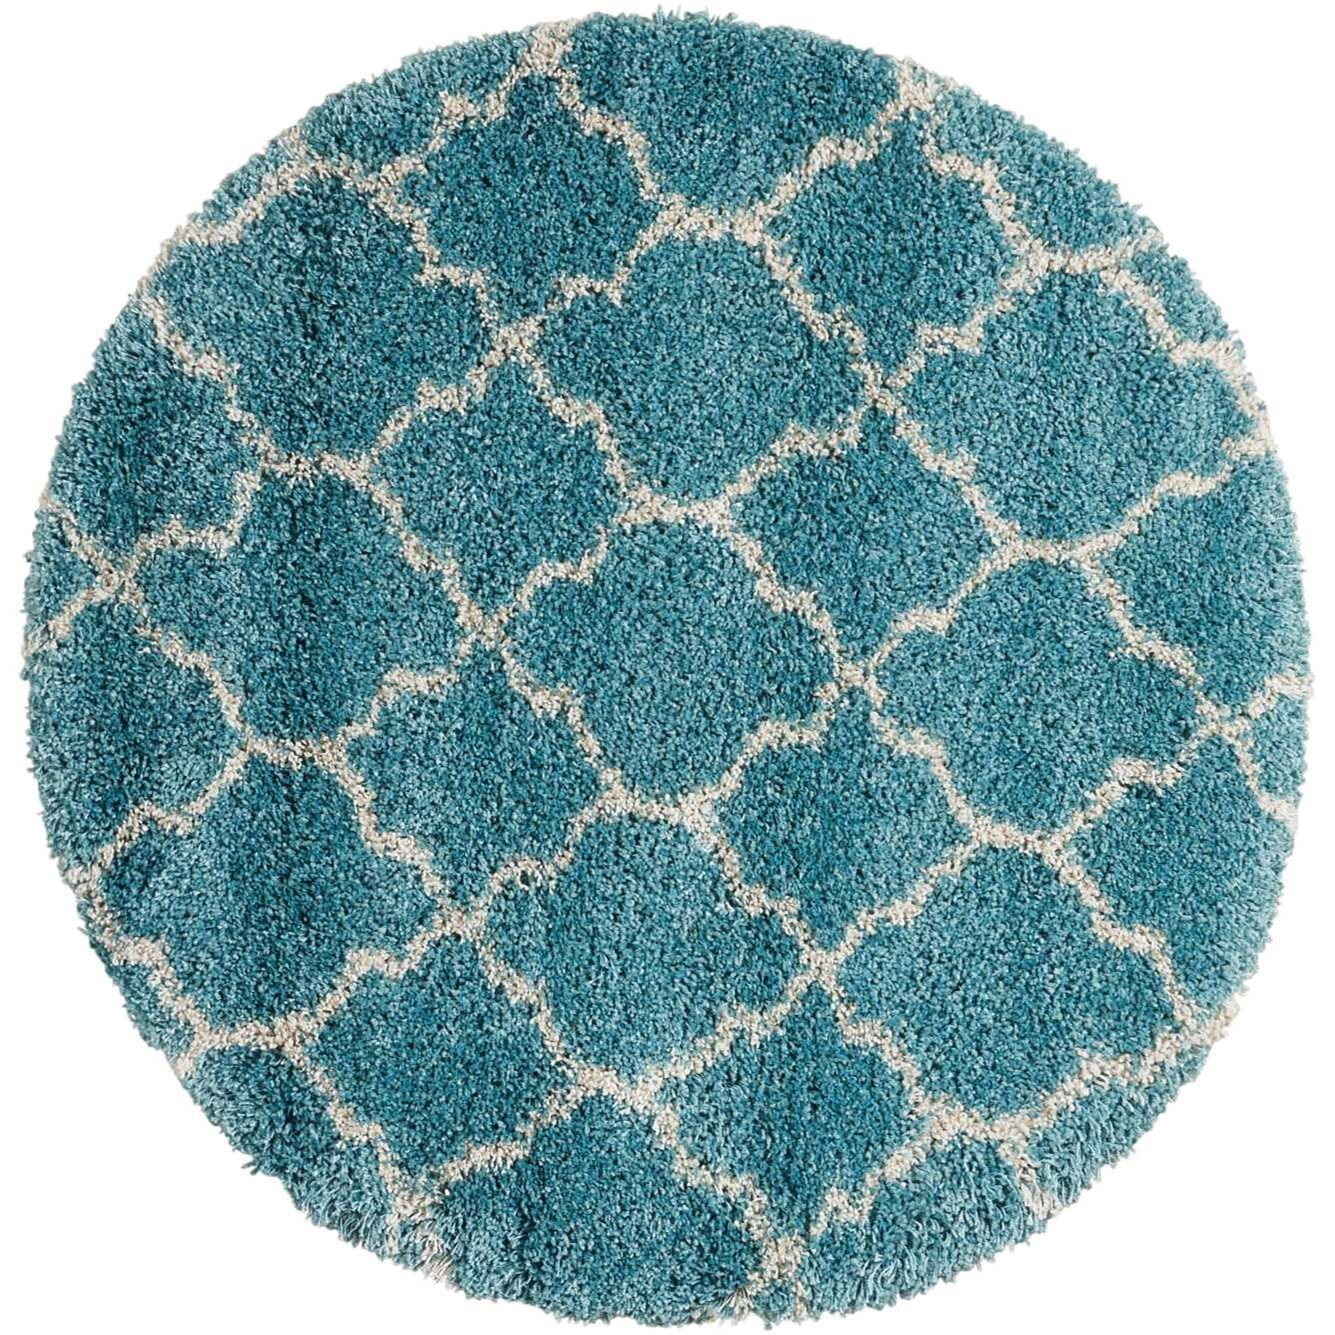 Amore Amore AMOR2 Blue 4' Round Area Rug by Nourison at Home Collections Furniture